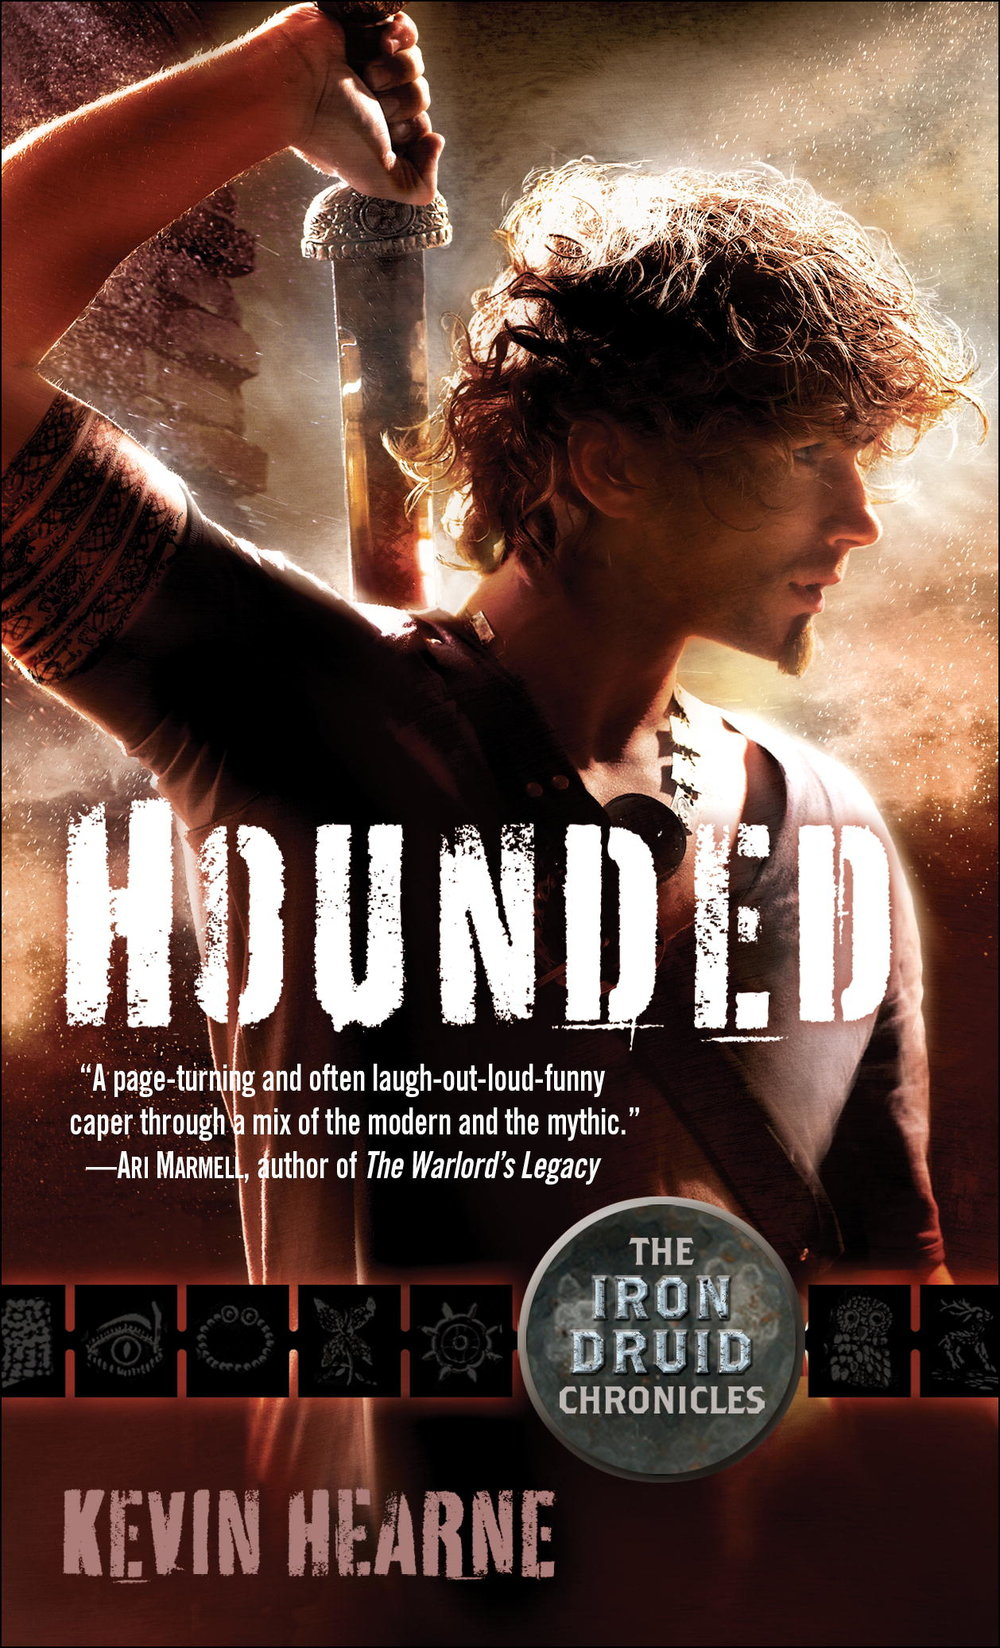 Hounded by Kevin Hearne with a young, fit, red-haired man reaching behind his back to draw his sword